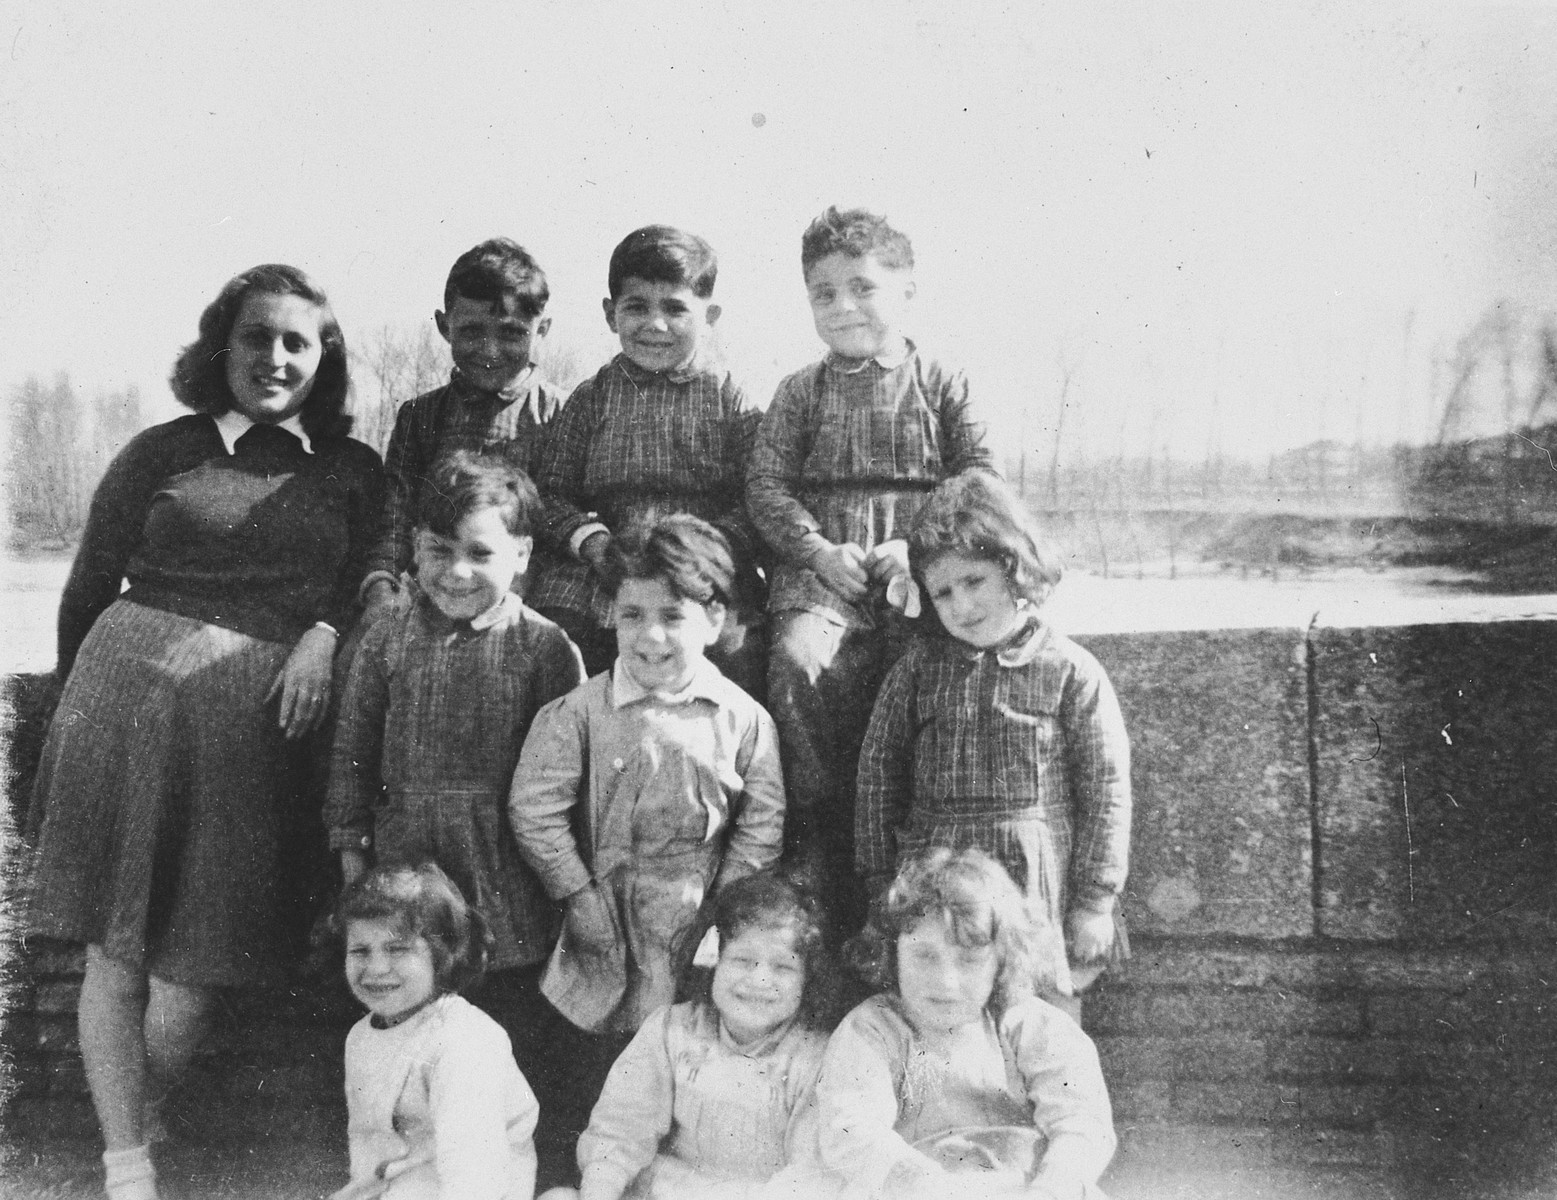 A Jewish teenager poses for a group portrait with the young children she is helping teach the alphabet to in Vic-sur-Cere.  Pictured standing on the left is the donor, Ruth Strauss.